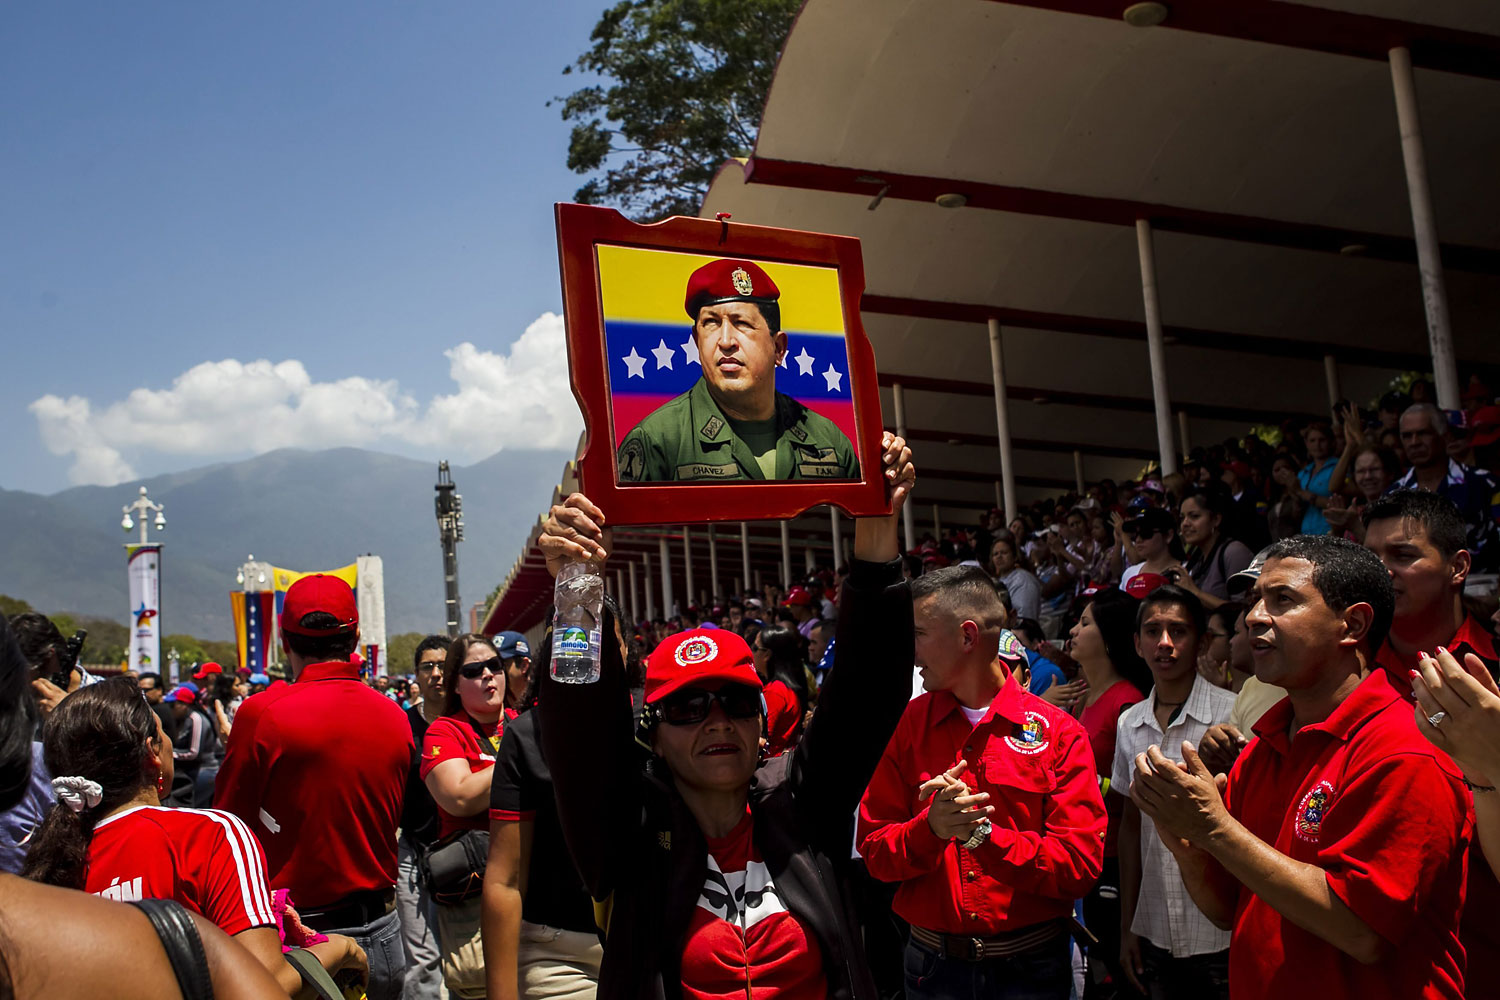 A group of people carry the picture of late Venezuelan president Hugo Chavez, during the military parade to commemorate the first anniversary of the death of Chavez, in Caracas, March 5, 2014.